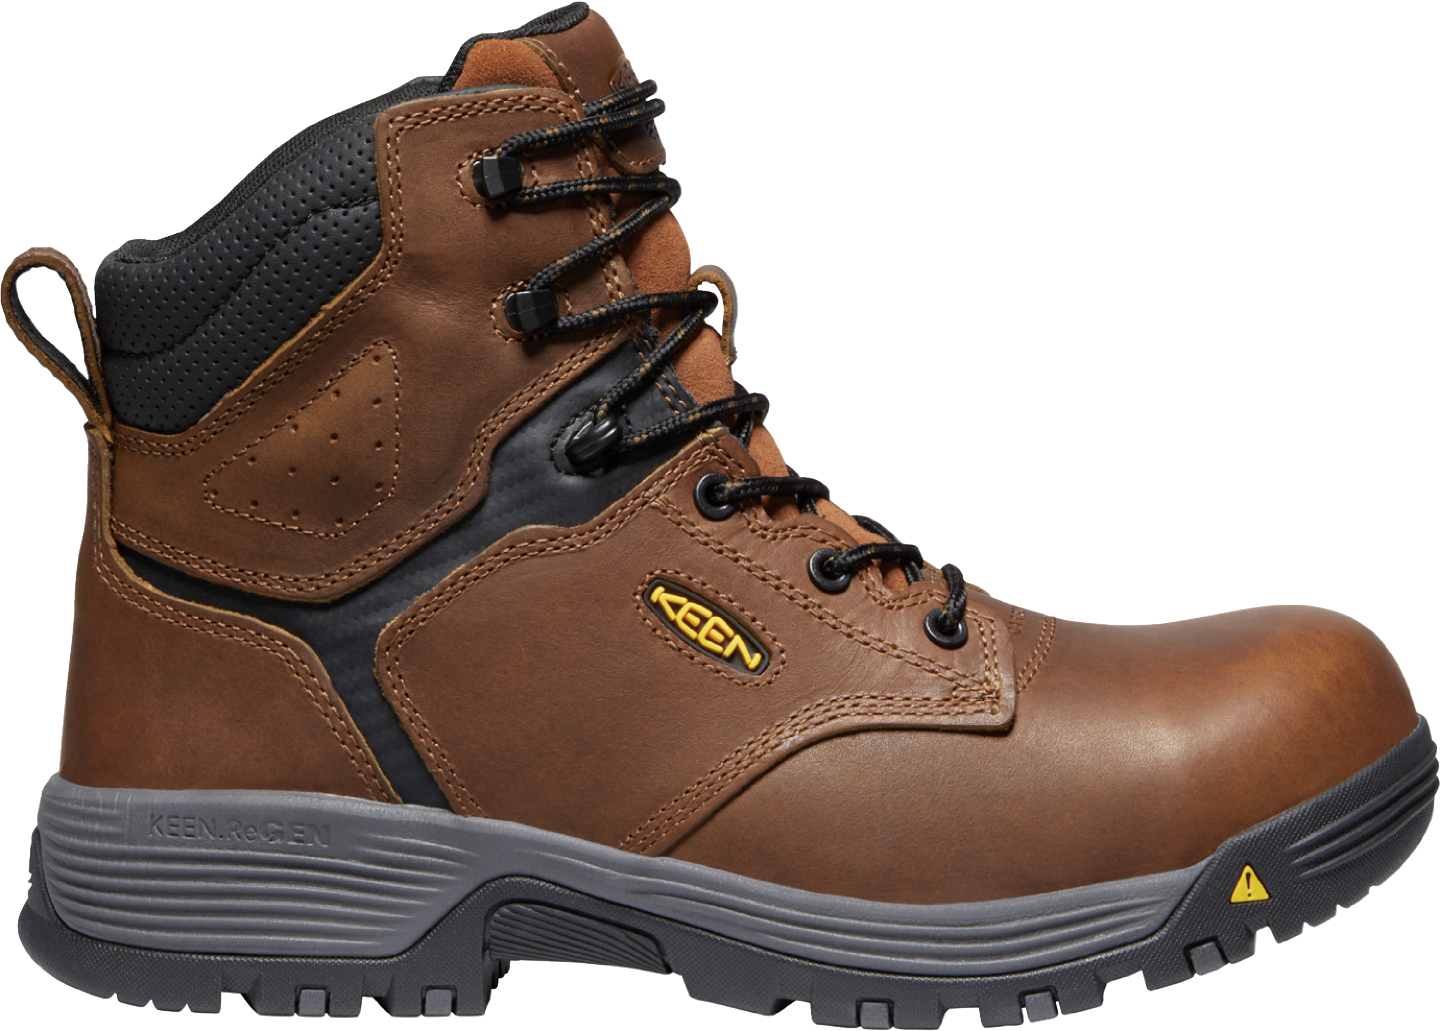 Keen 1024190 Keen Composite Safety Toe  ESD Boot